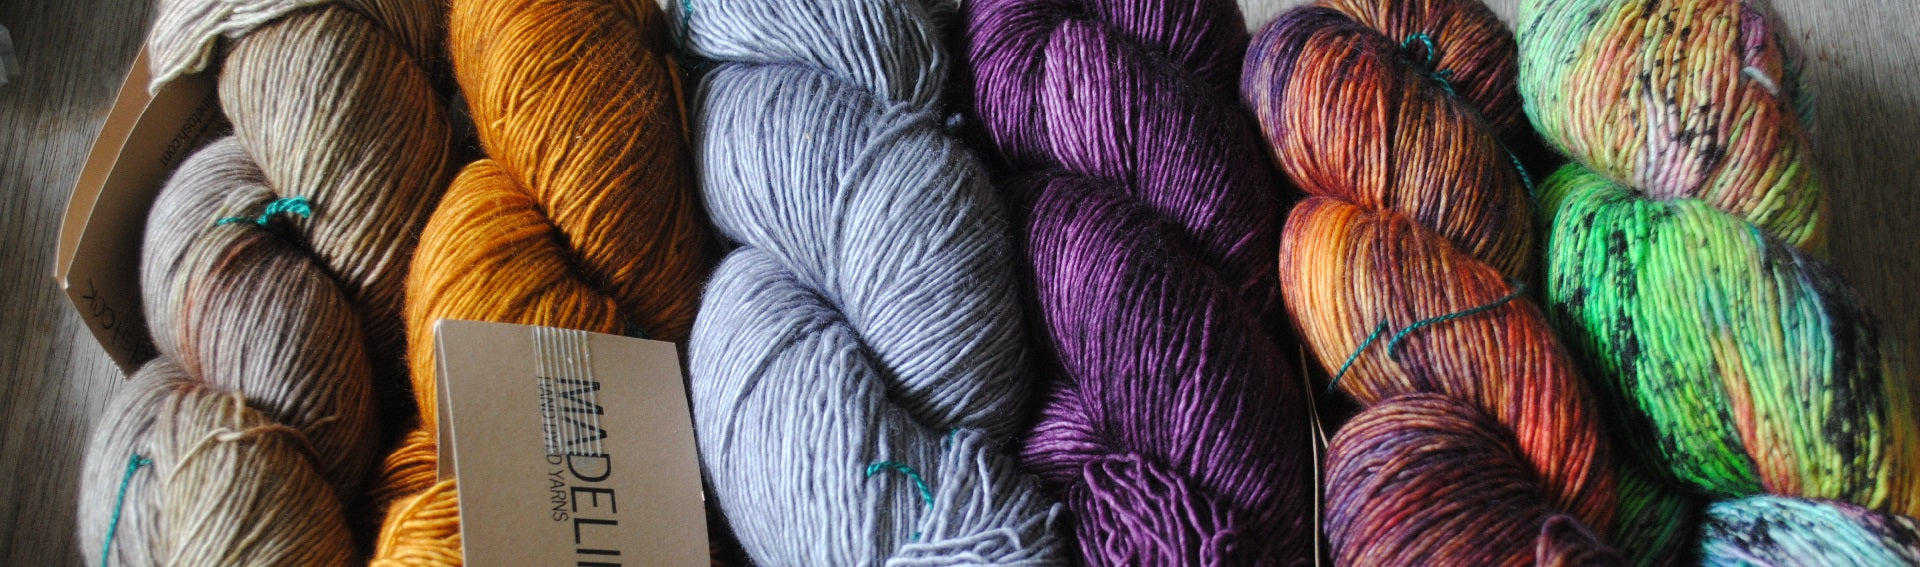 Yarn Glorious Yarn